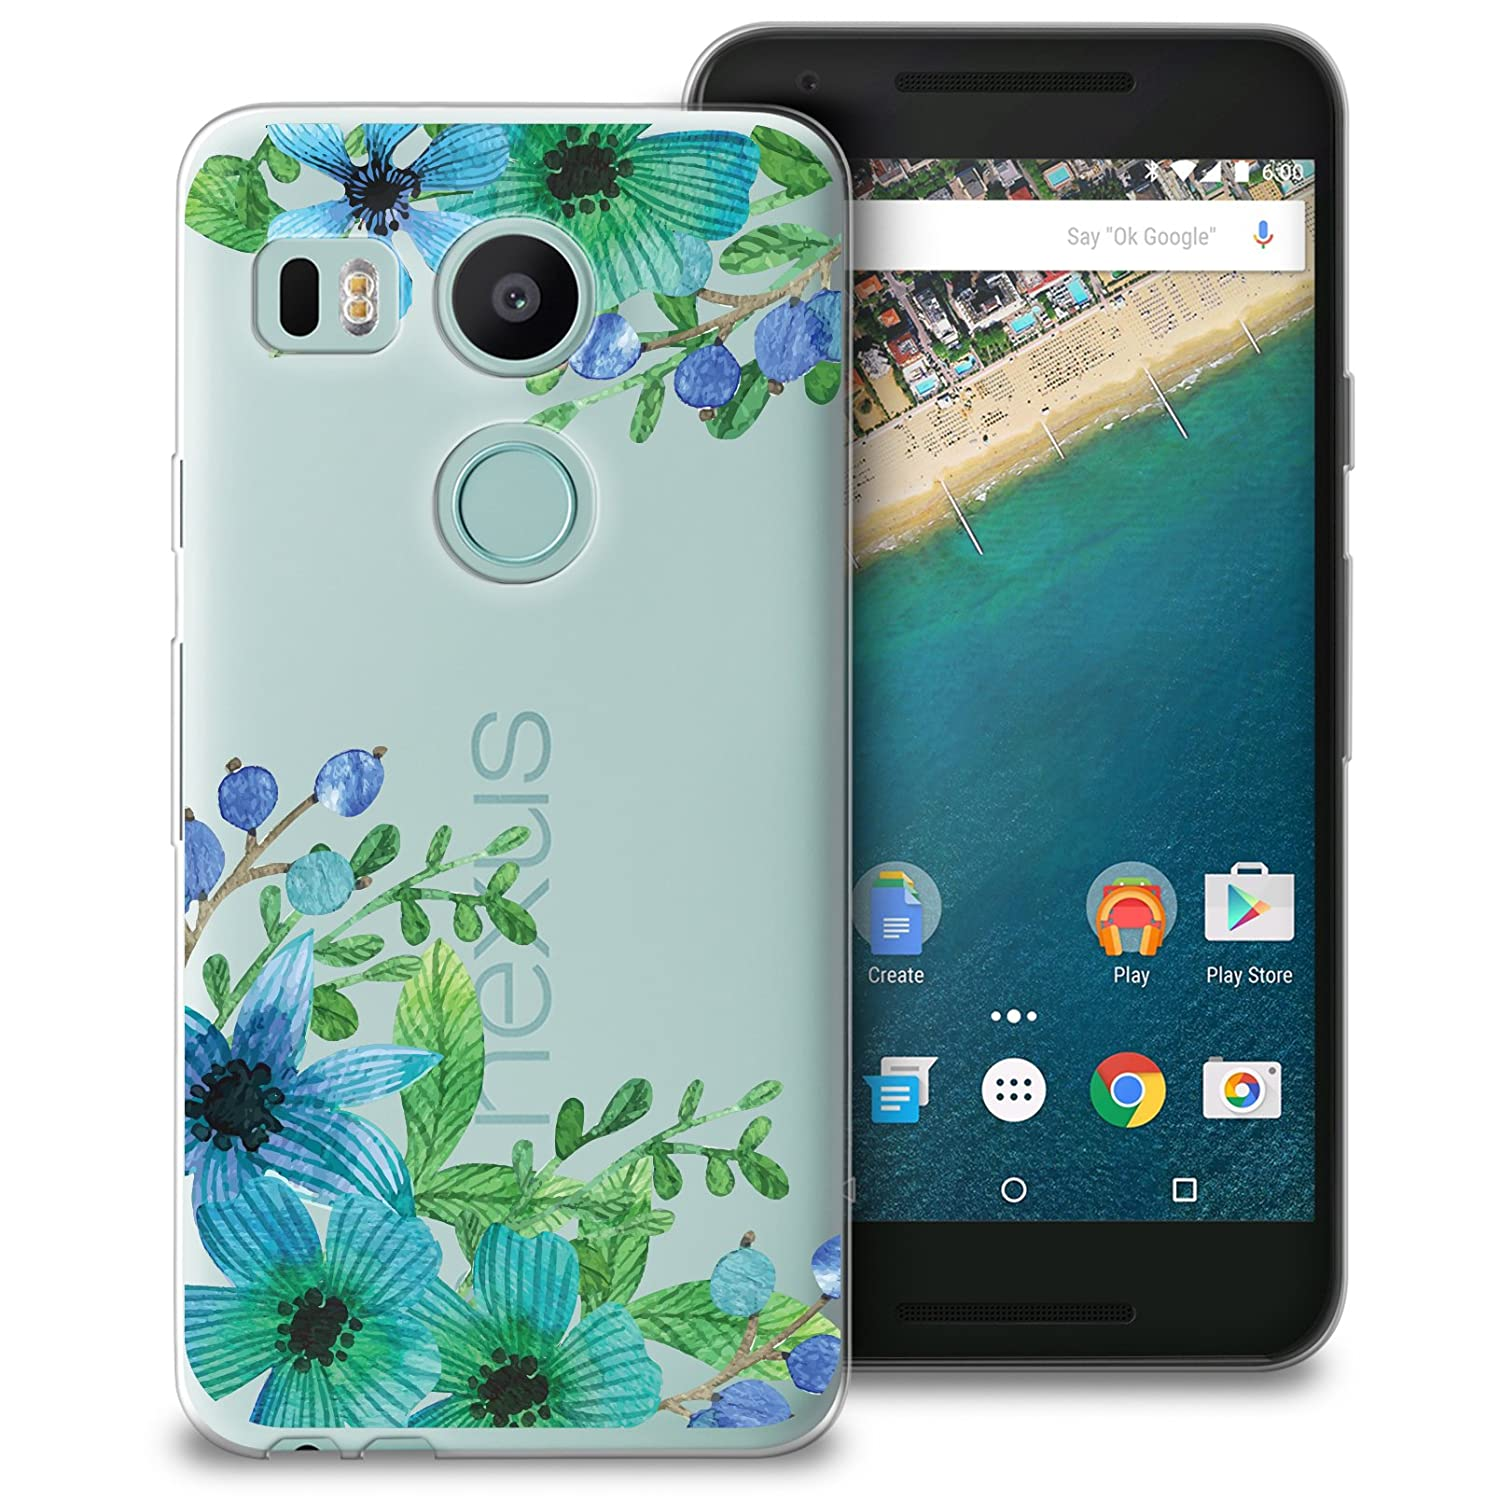 CasesByLorraine Nexus 5X Case, Lilac Floral Blue Green Flowers Clear Transparent Case Flexible TPU Soft Gel Protective Cover for LG Google Nexus 5X ...